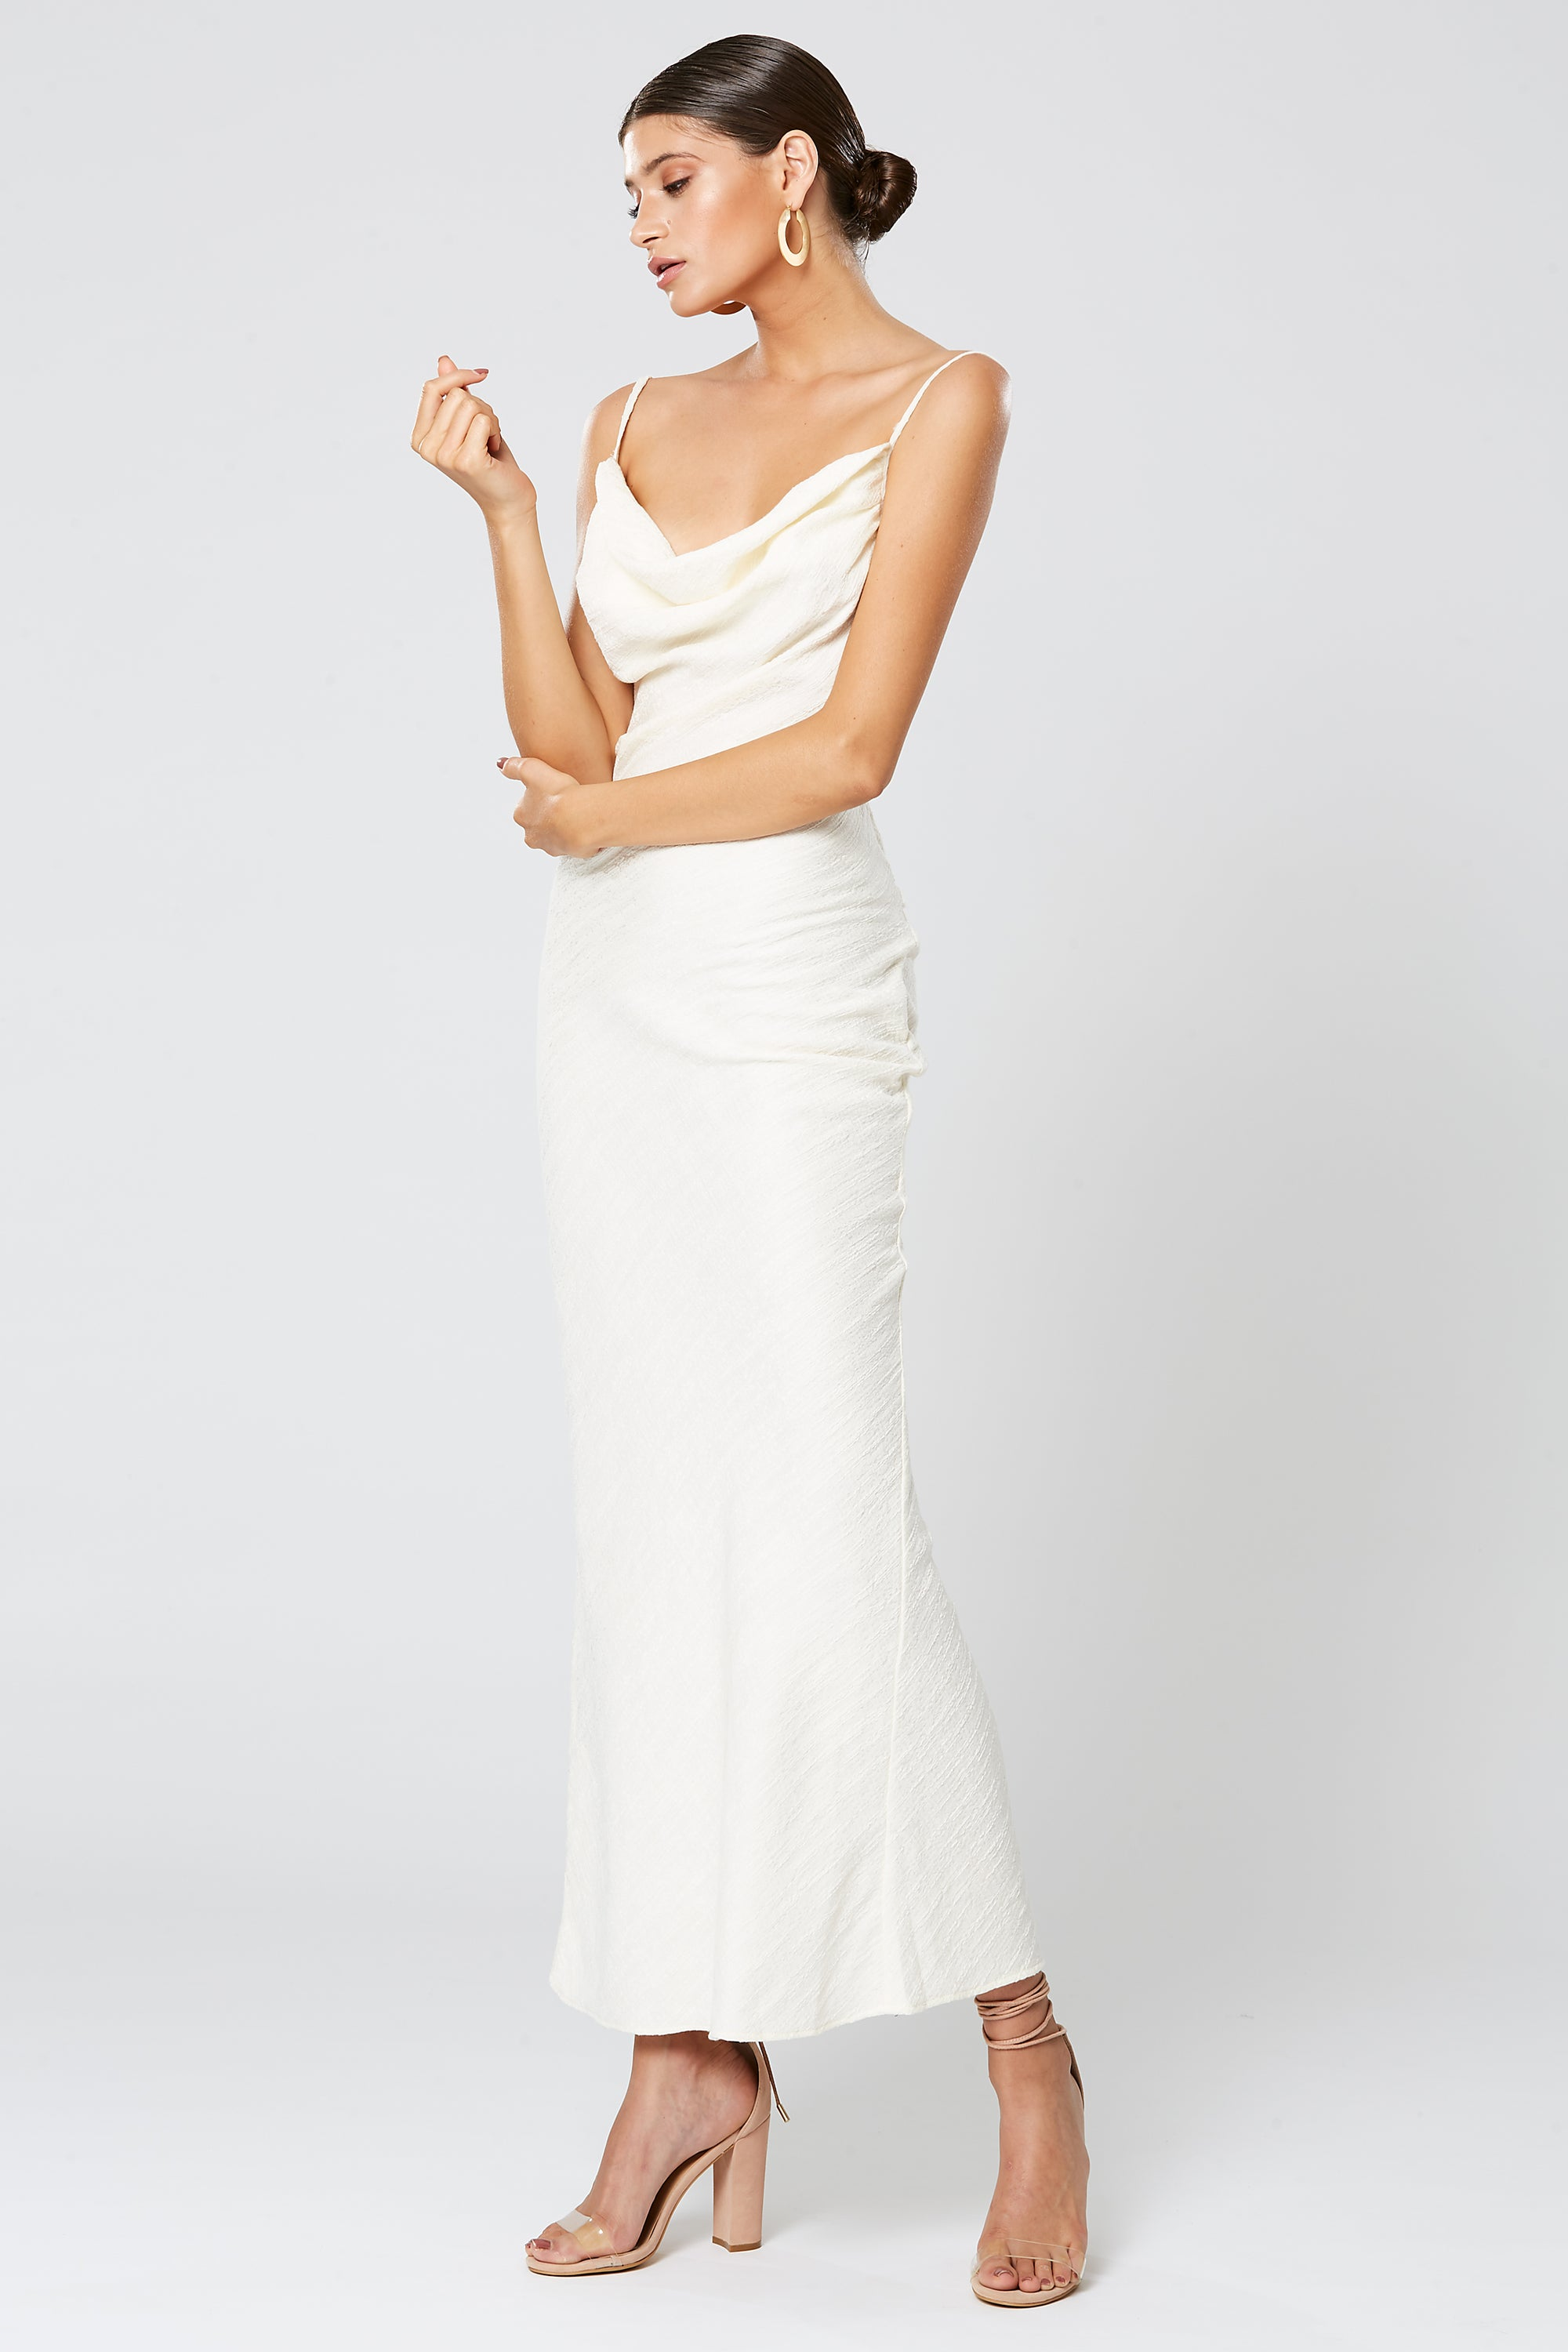 0bd19c85cc5 Winona Fortune Cowl Neck Maxi Dress - Ivory - Dress Hire AU